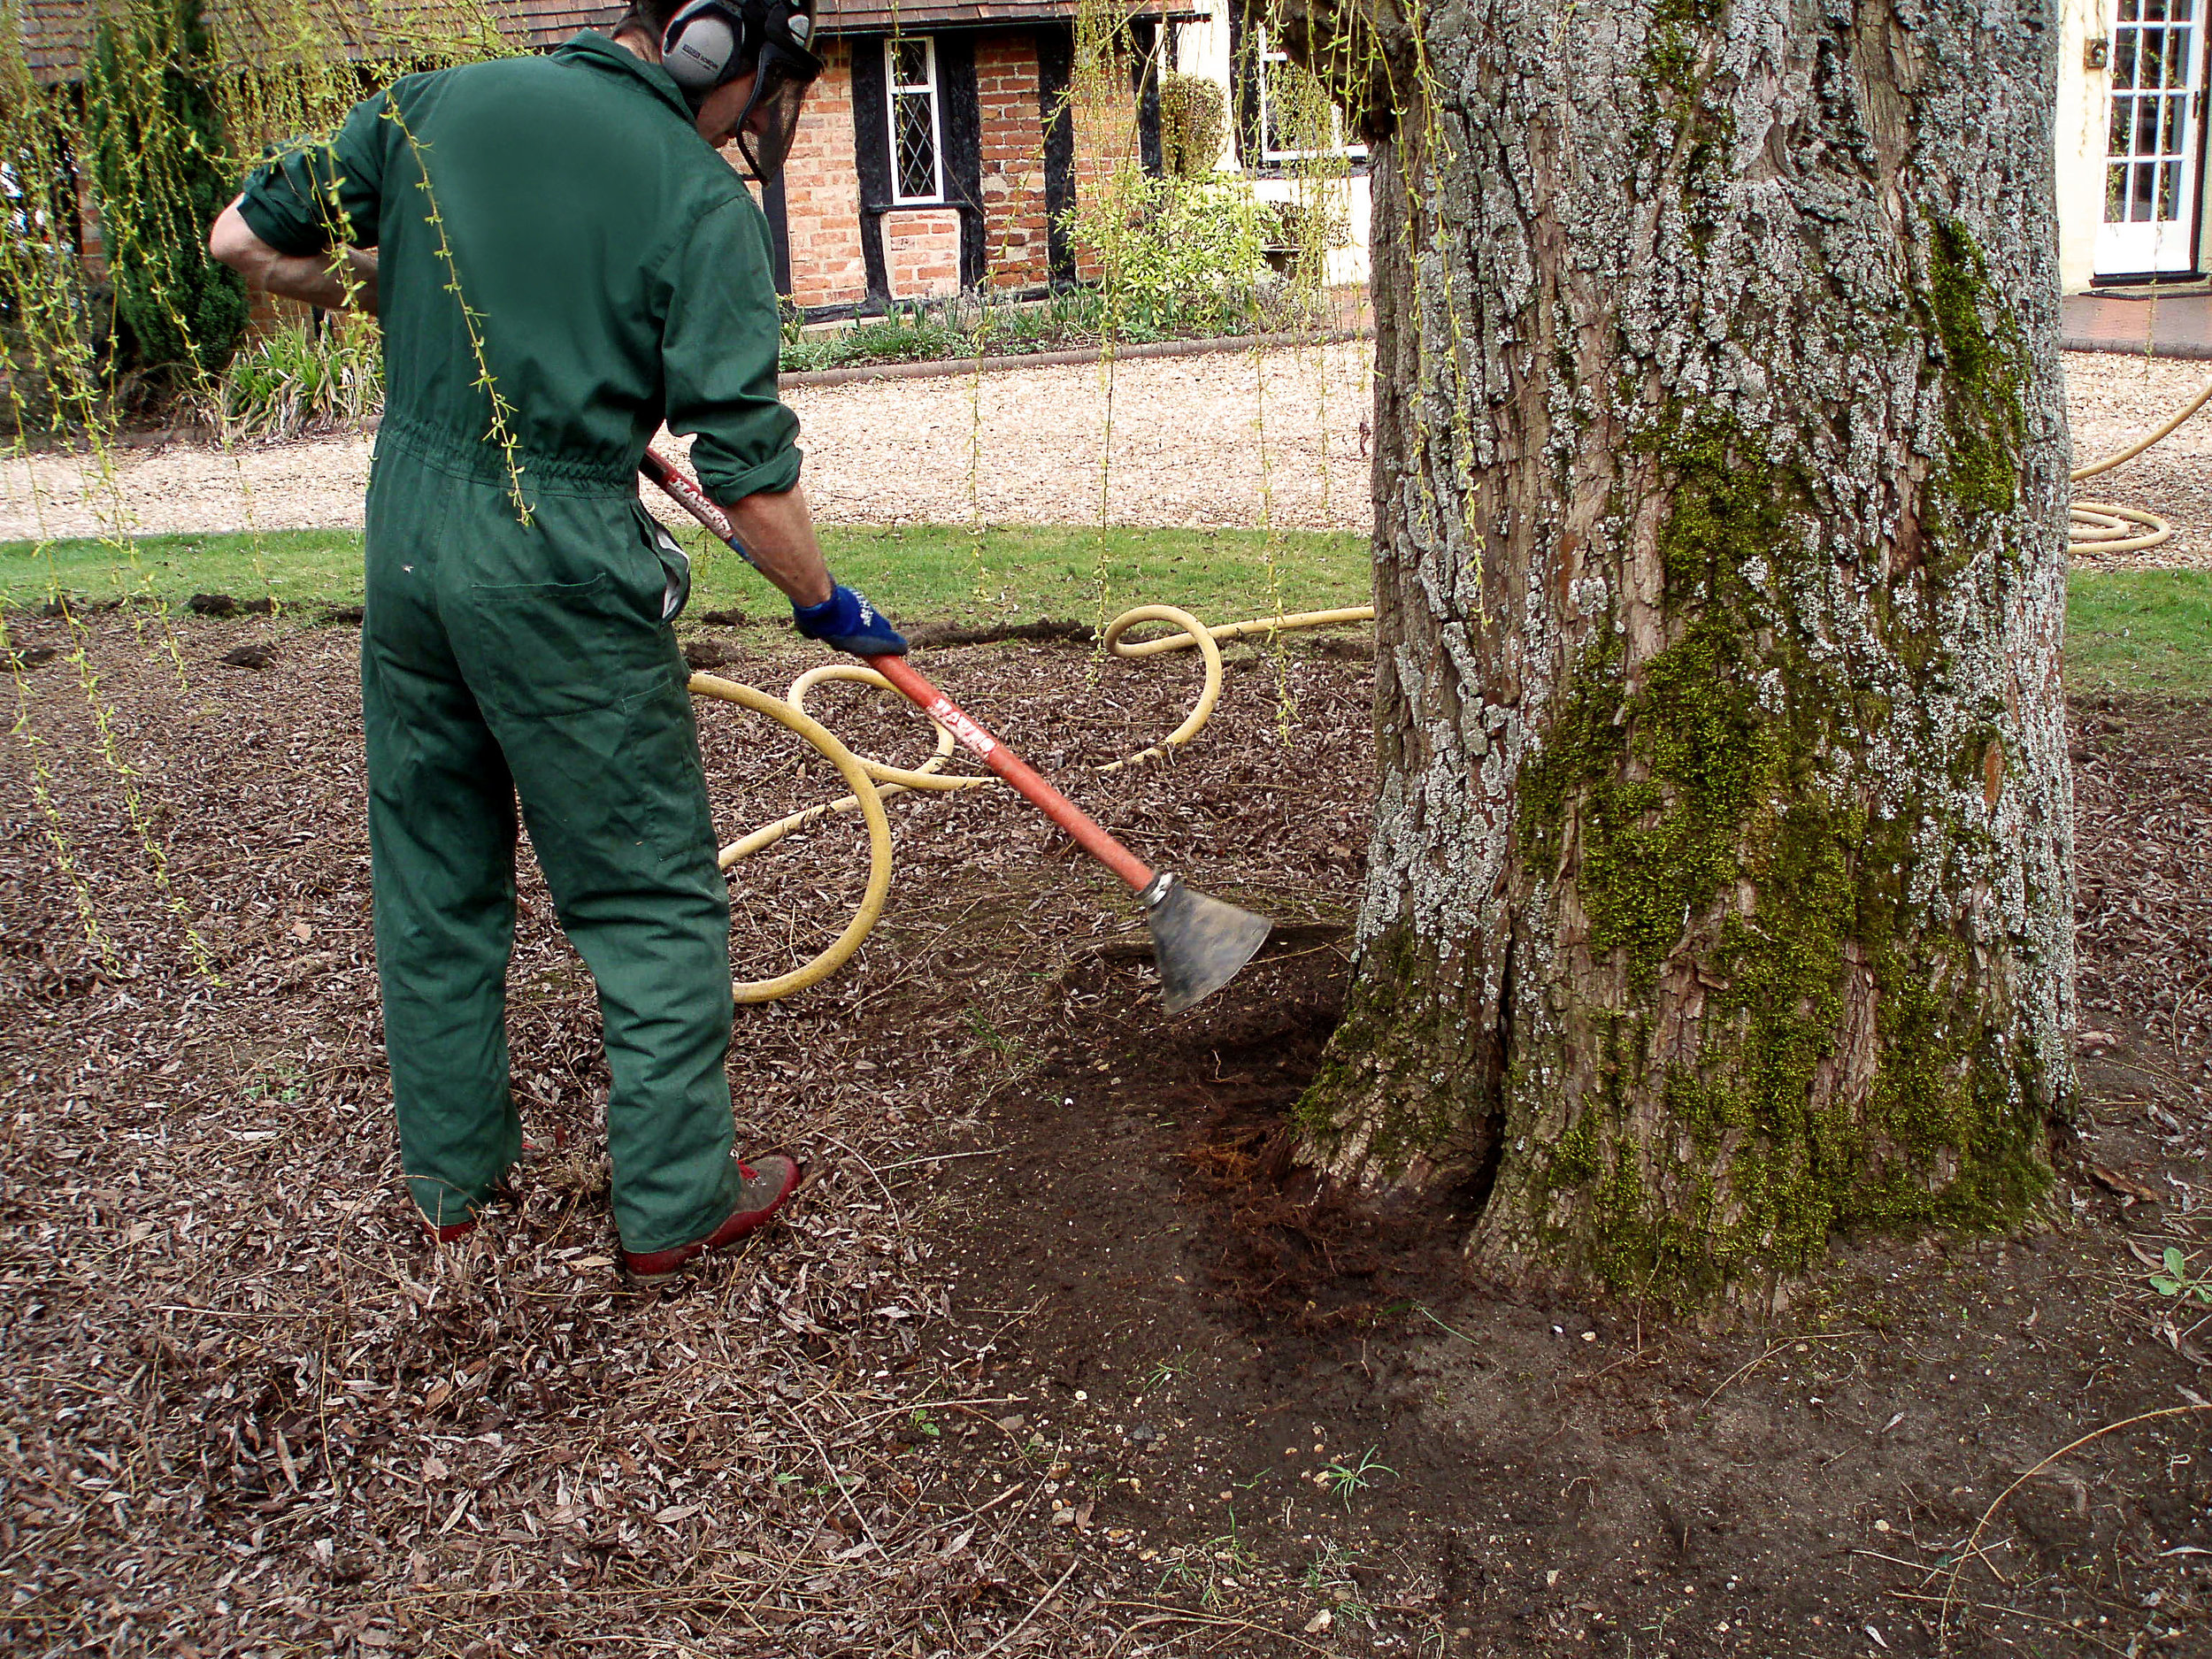 arborist-using-a-soilpick-to-carry-out-root-collar-excavation.jpg